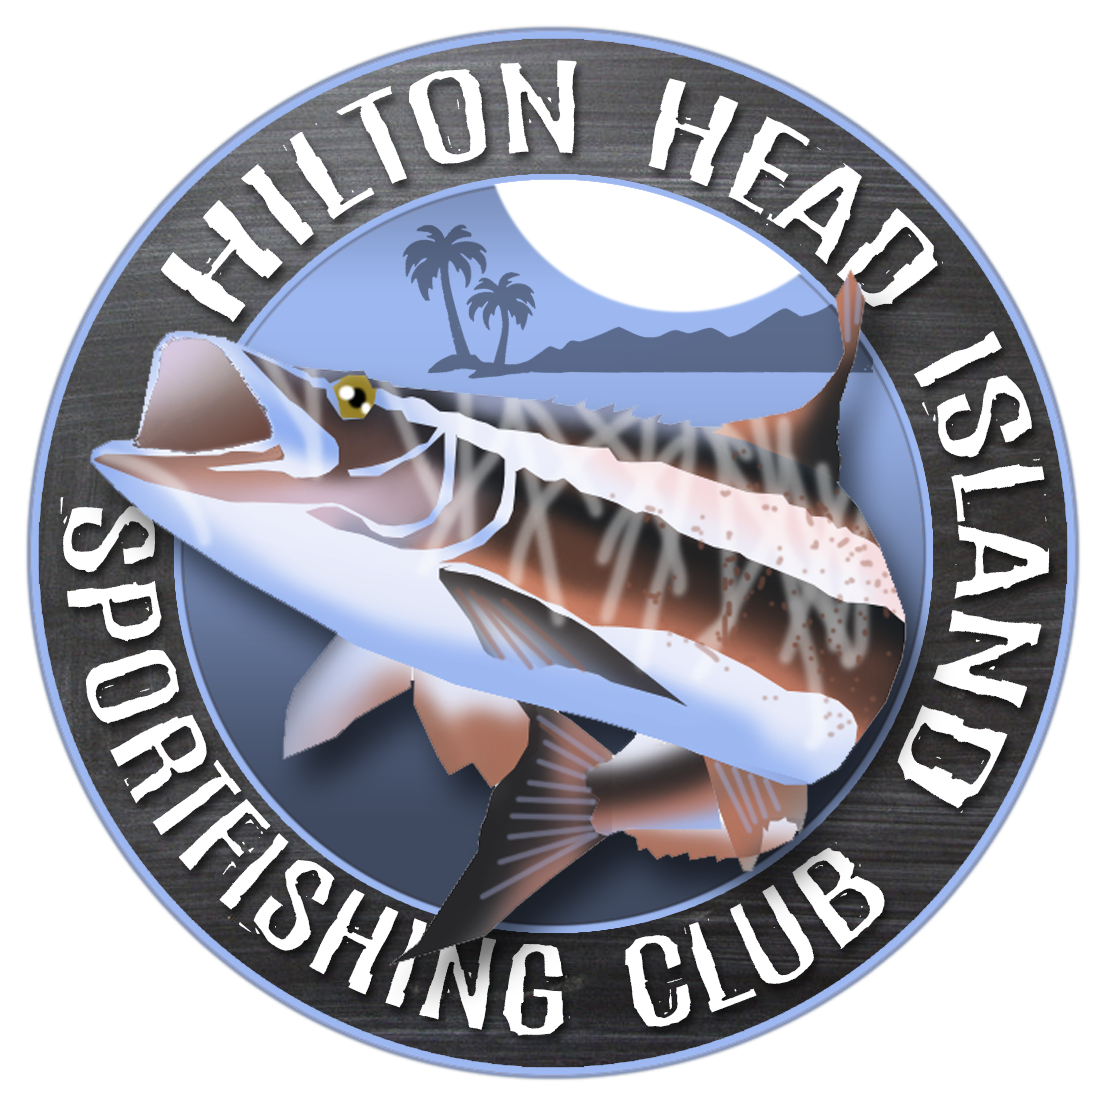 Hilton Head Island Sport Fishing Club